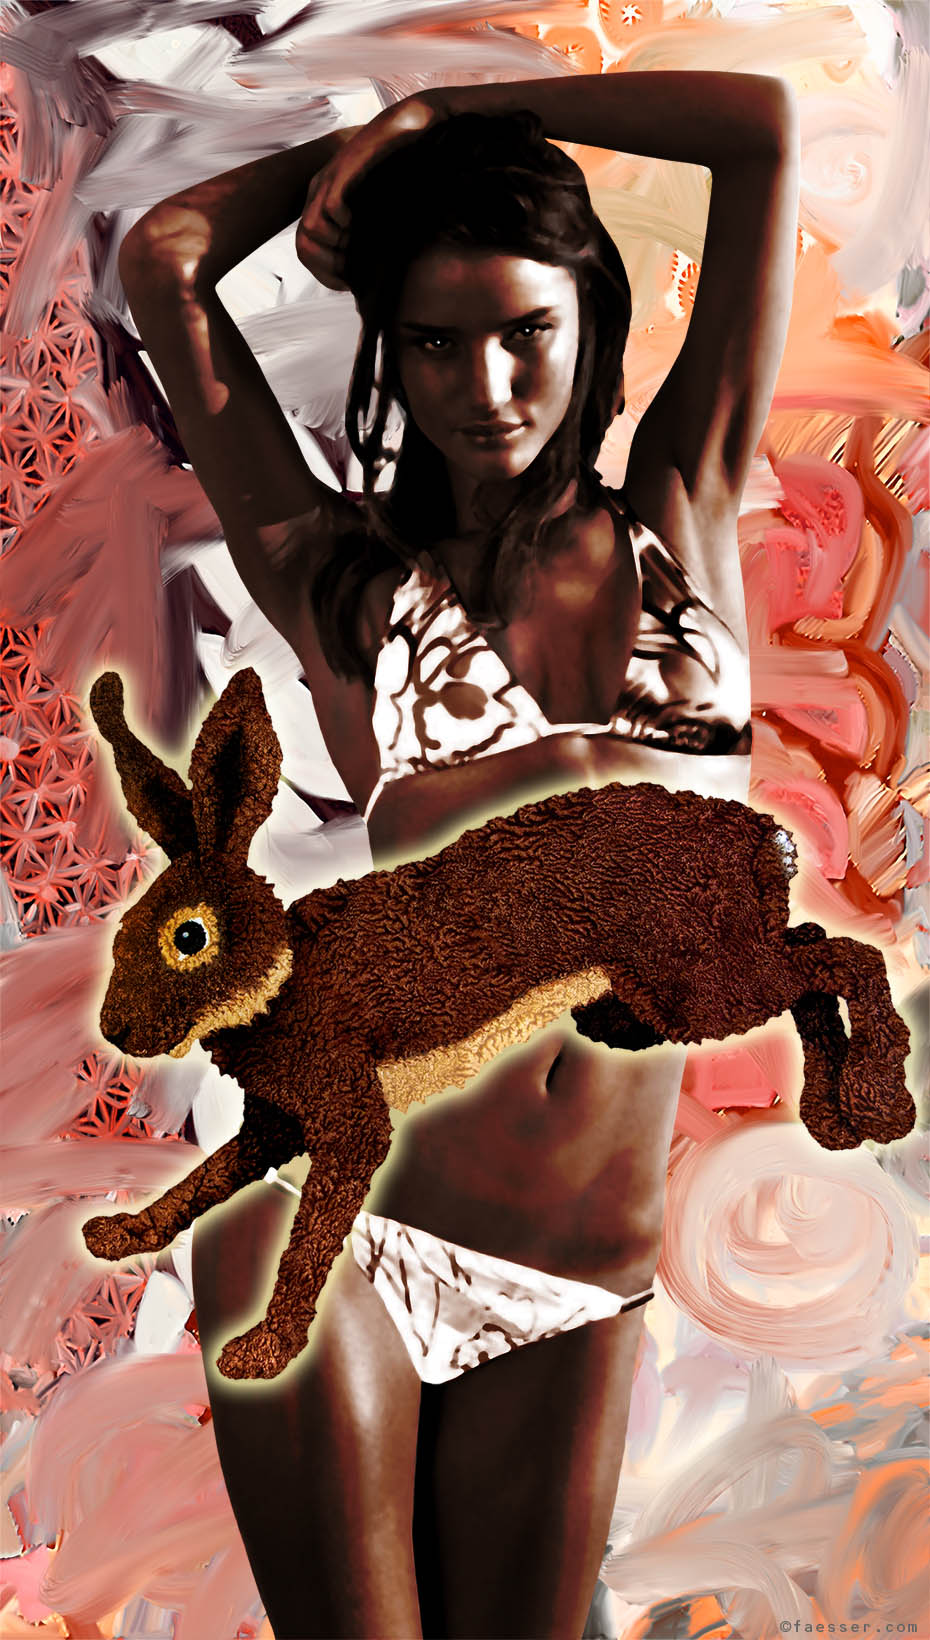 Posing Bikini Bunny with jumping hare; works of art; artist Roland Faesser, sculptor and painter 2013